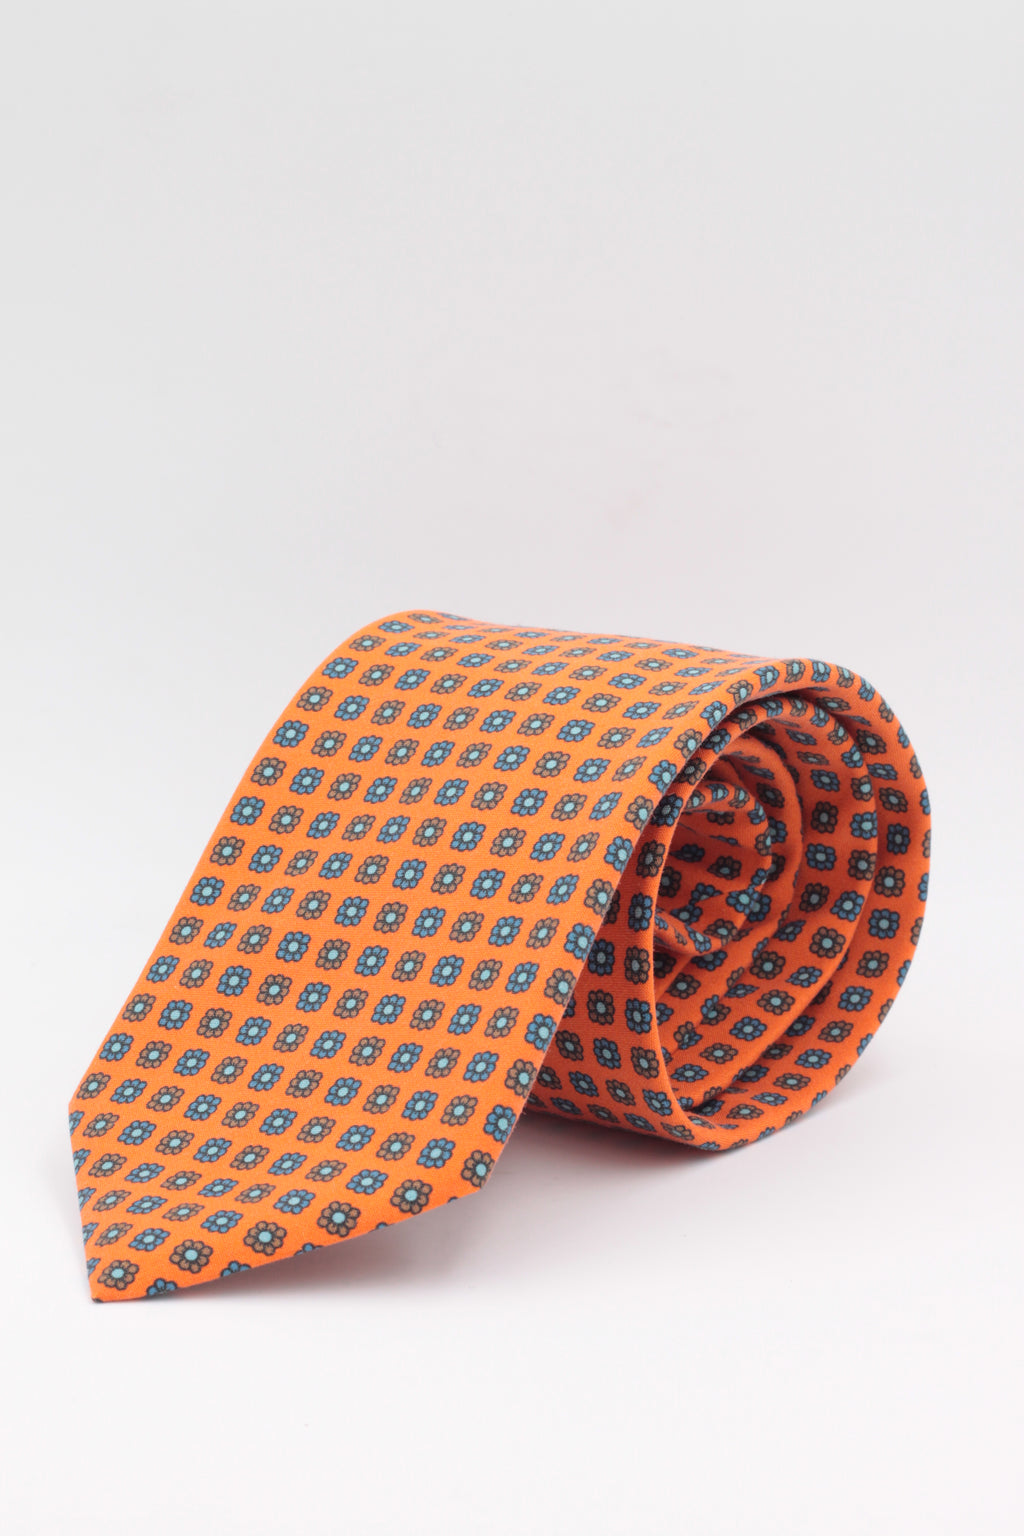 Orange, light blue and brown small flower print tie tie